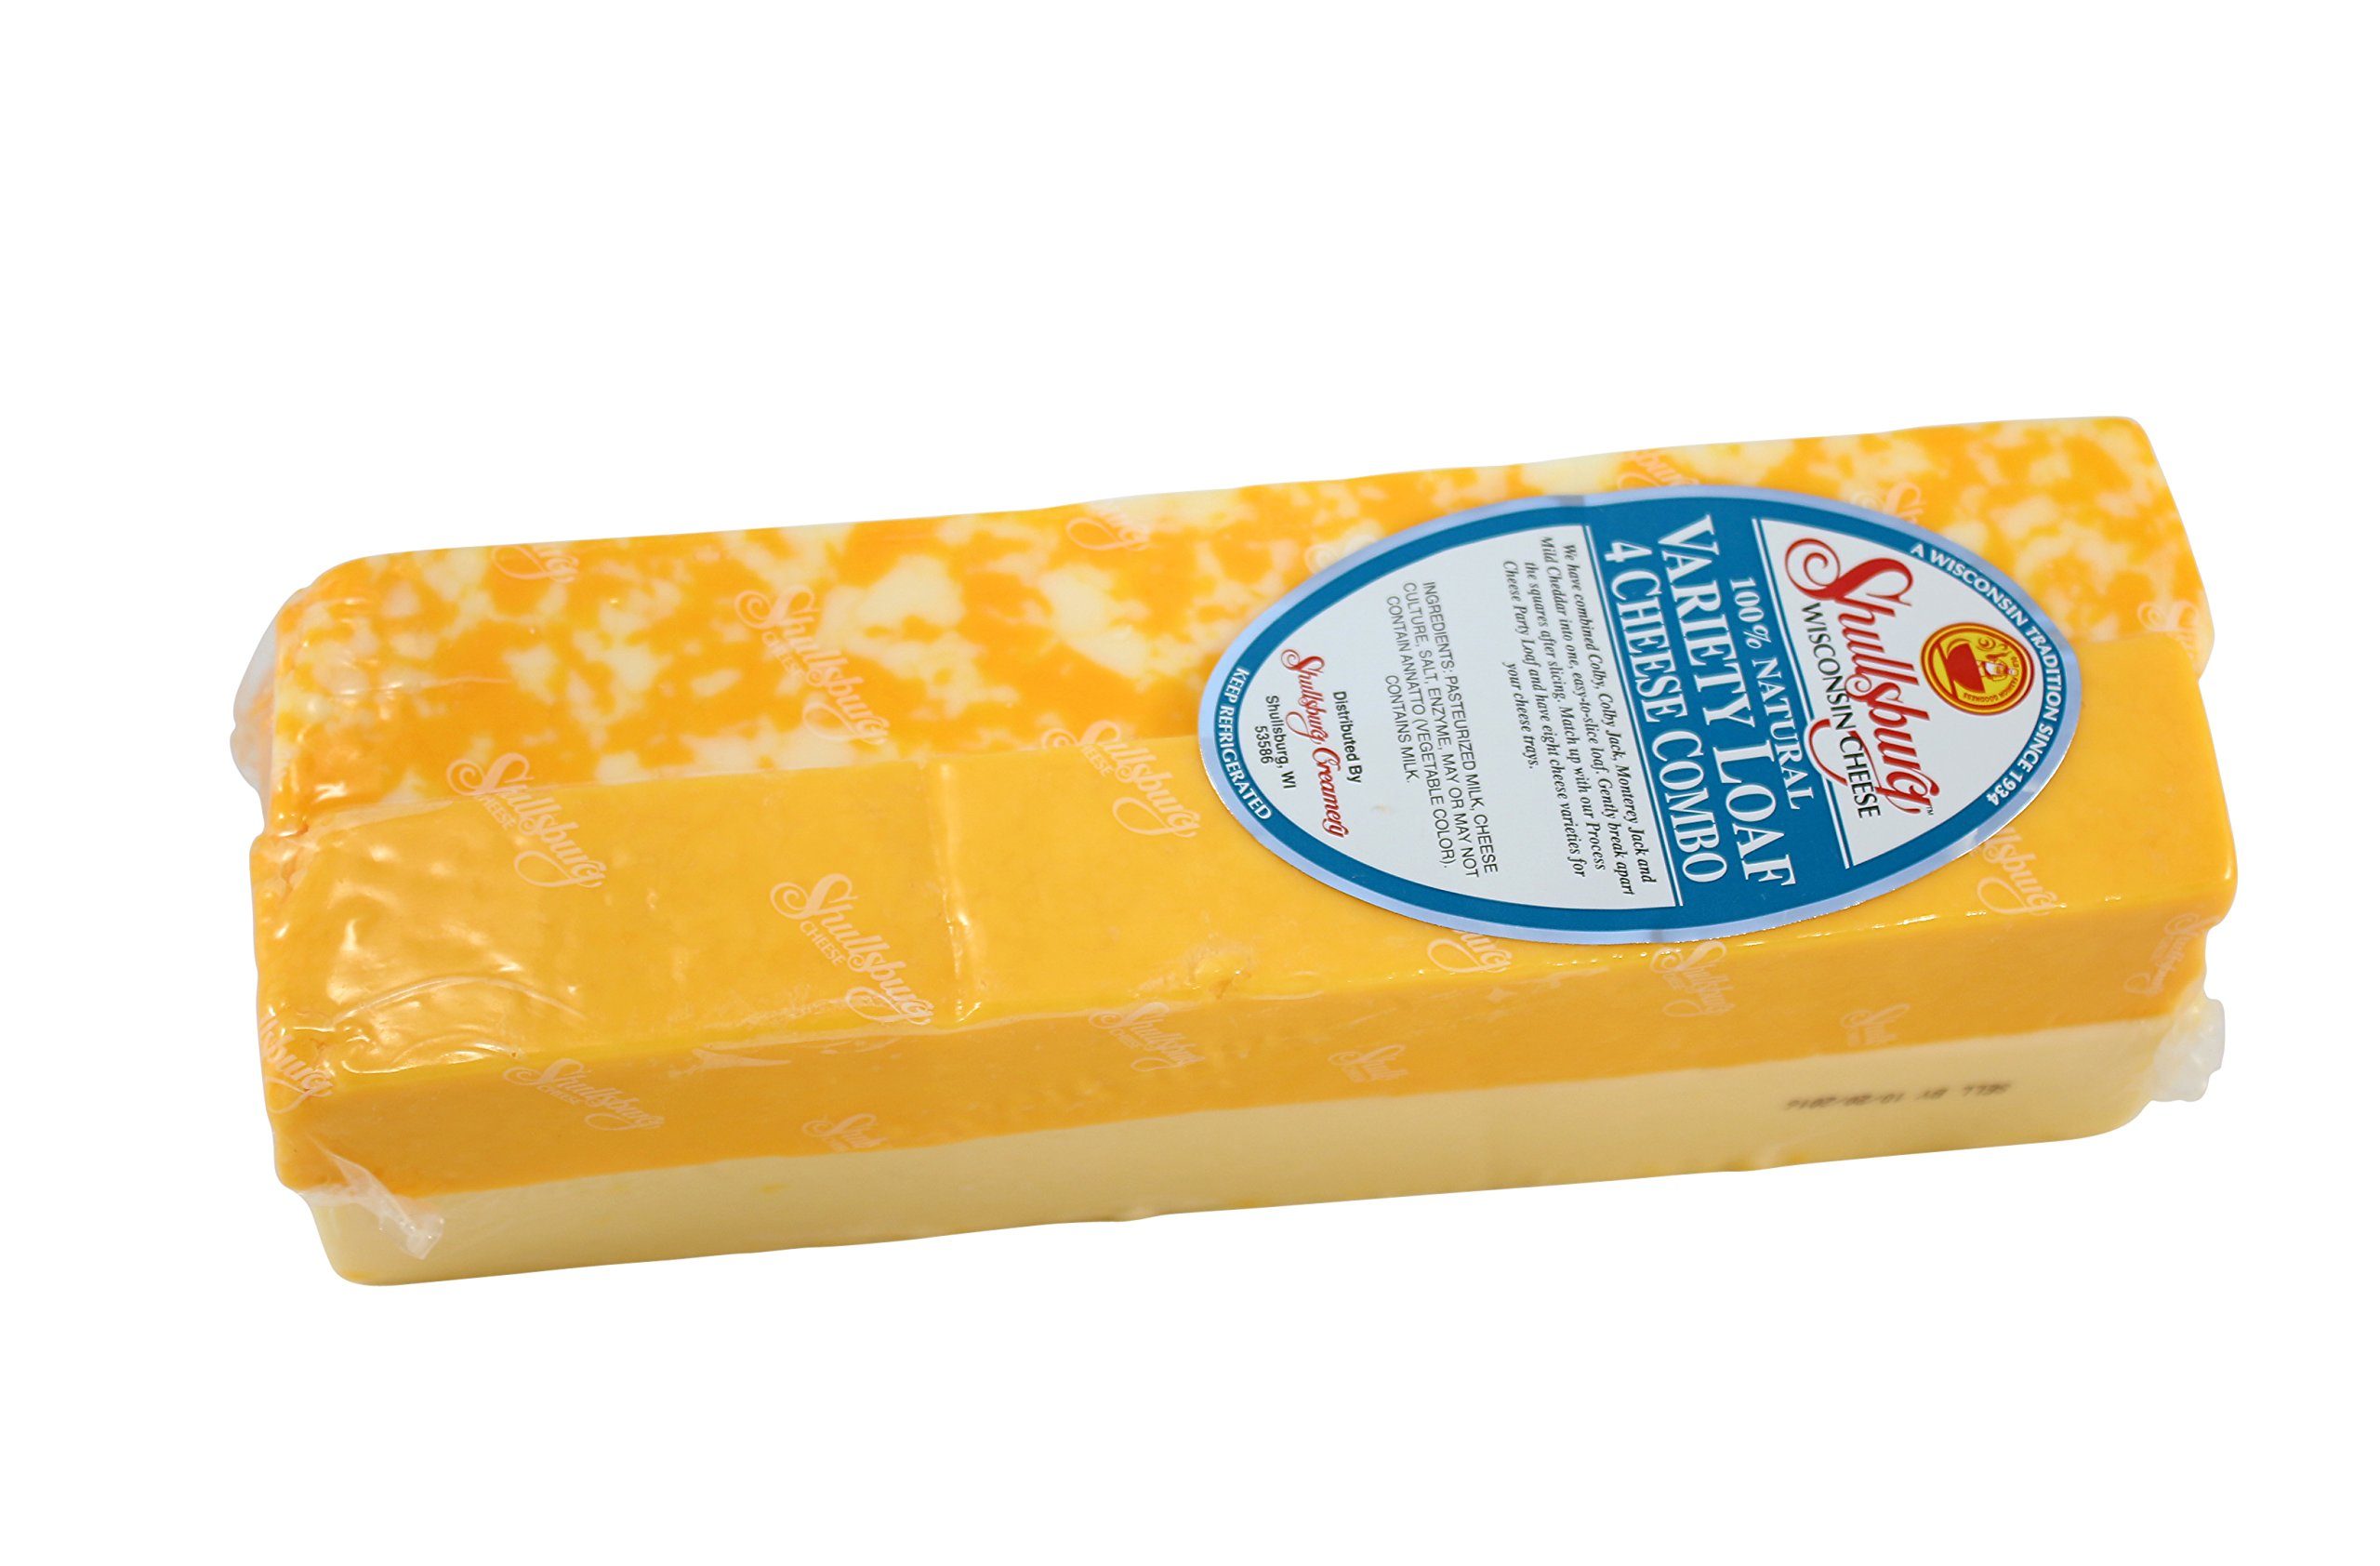 Shullsburg Creamery - Variety Loaf Natural Cheese - 5 Pound Loaf